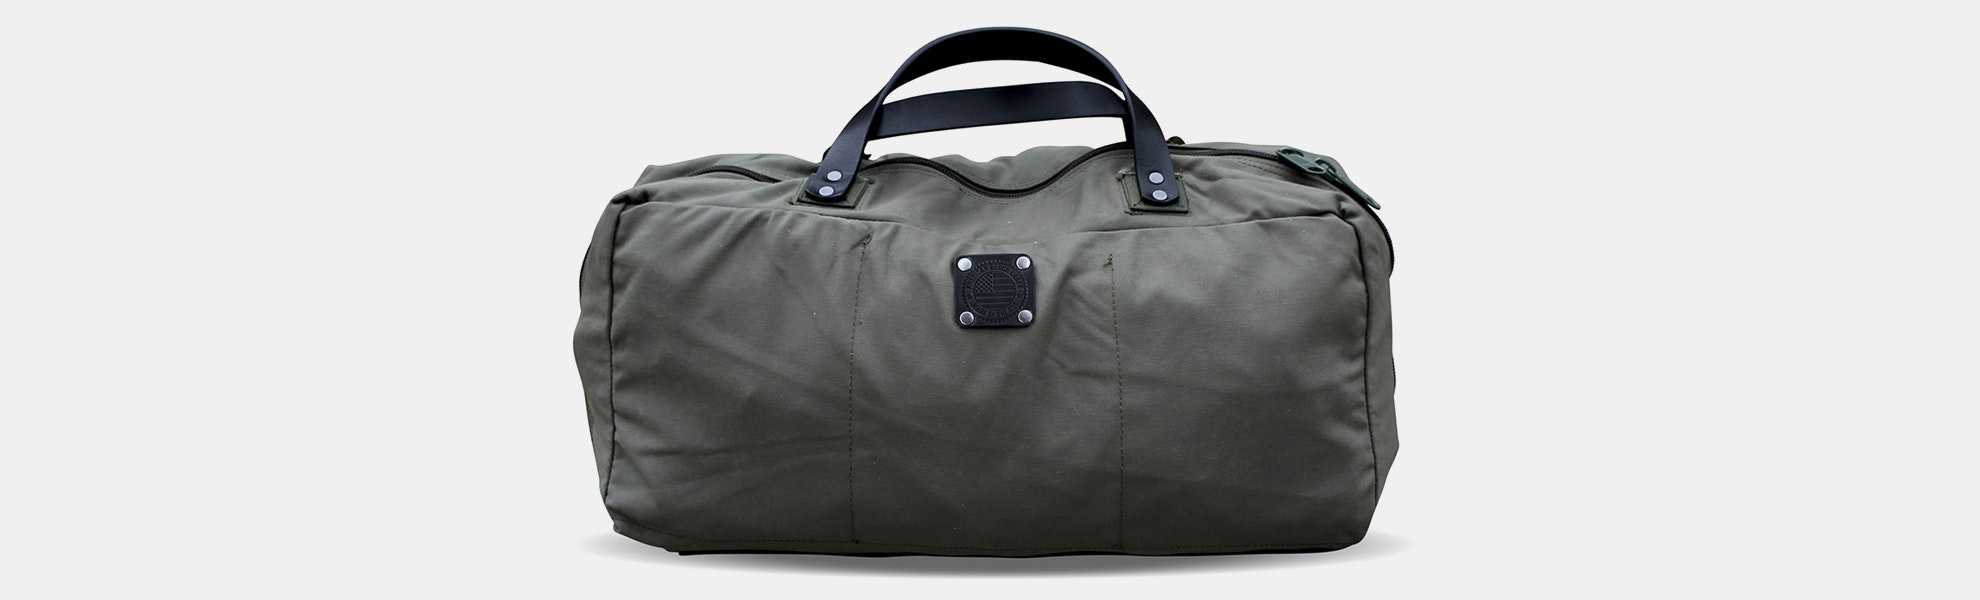 American Bench Craft Rescued Army Surplus Duffel